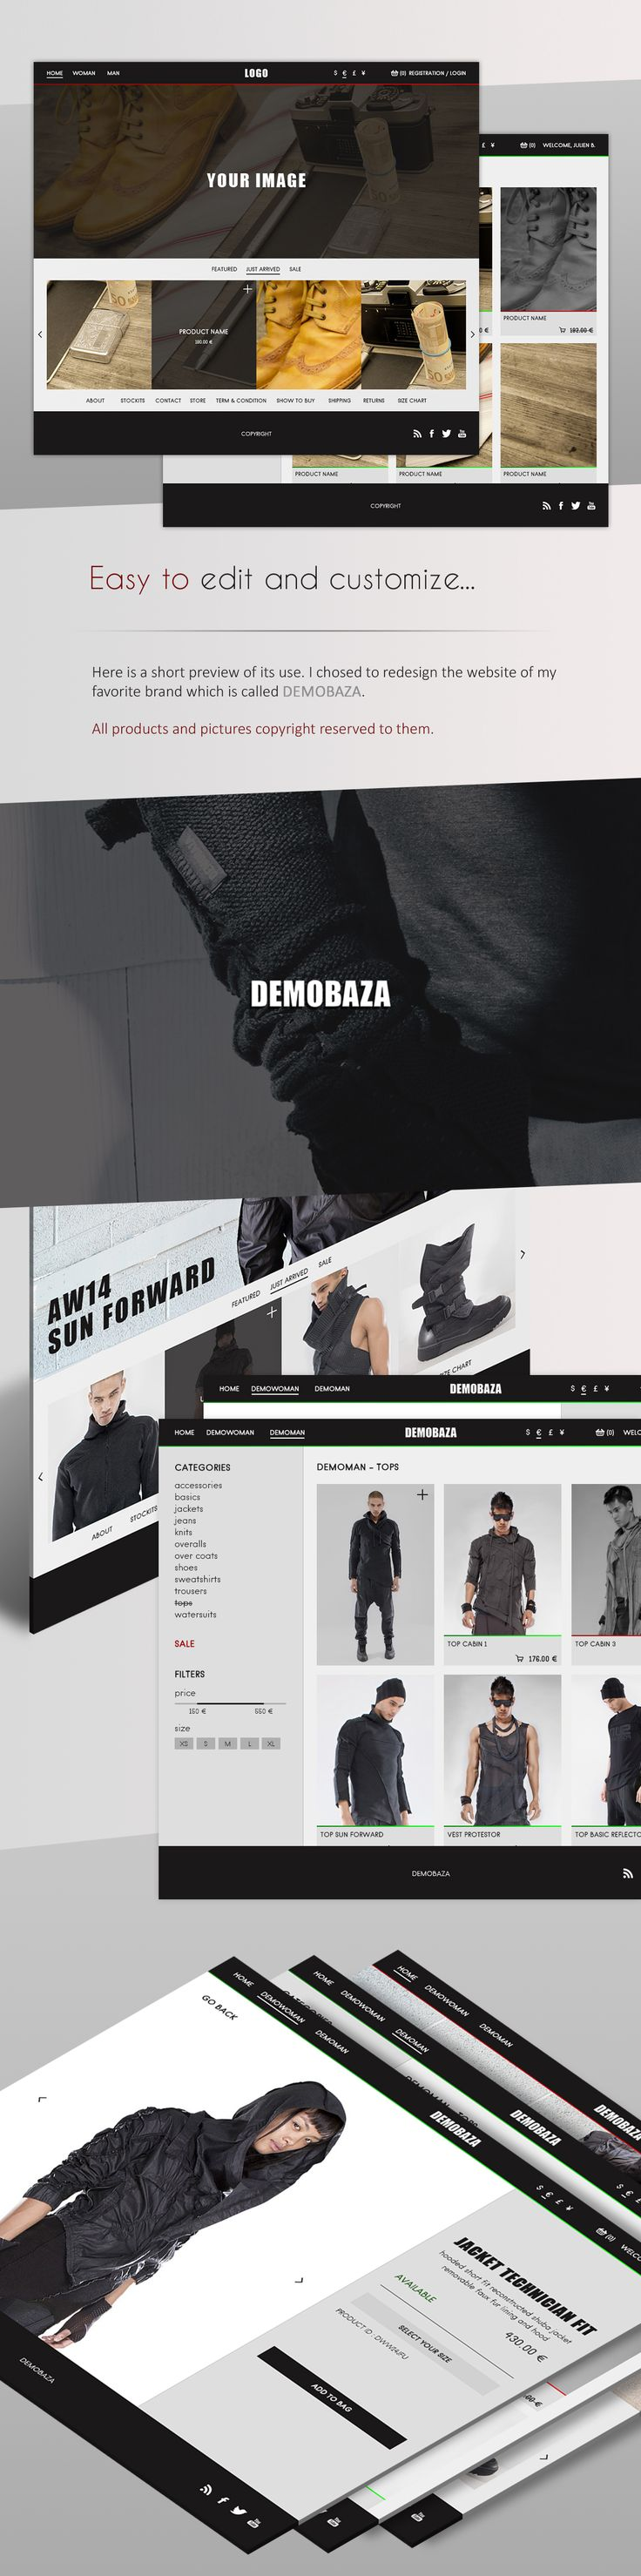 eCommerce Template for Clothing Store PSD